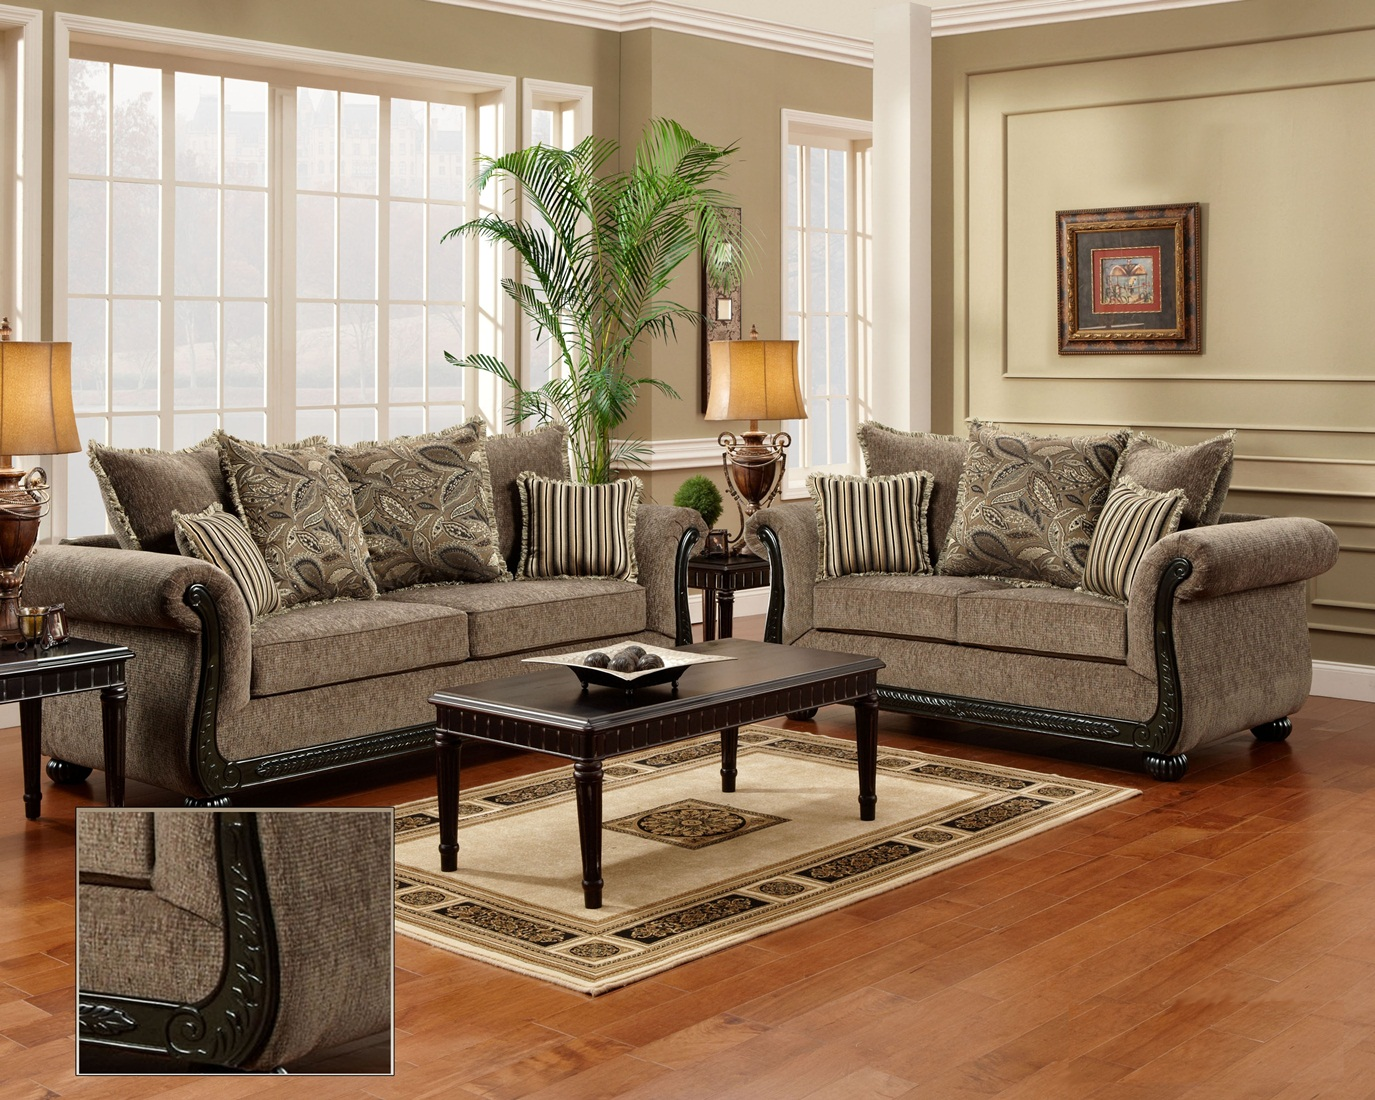 chenille sofa love seat living room furniture set wood trim pillows